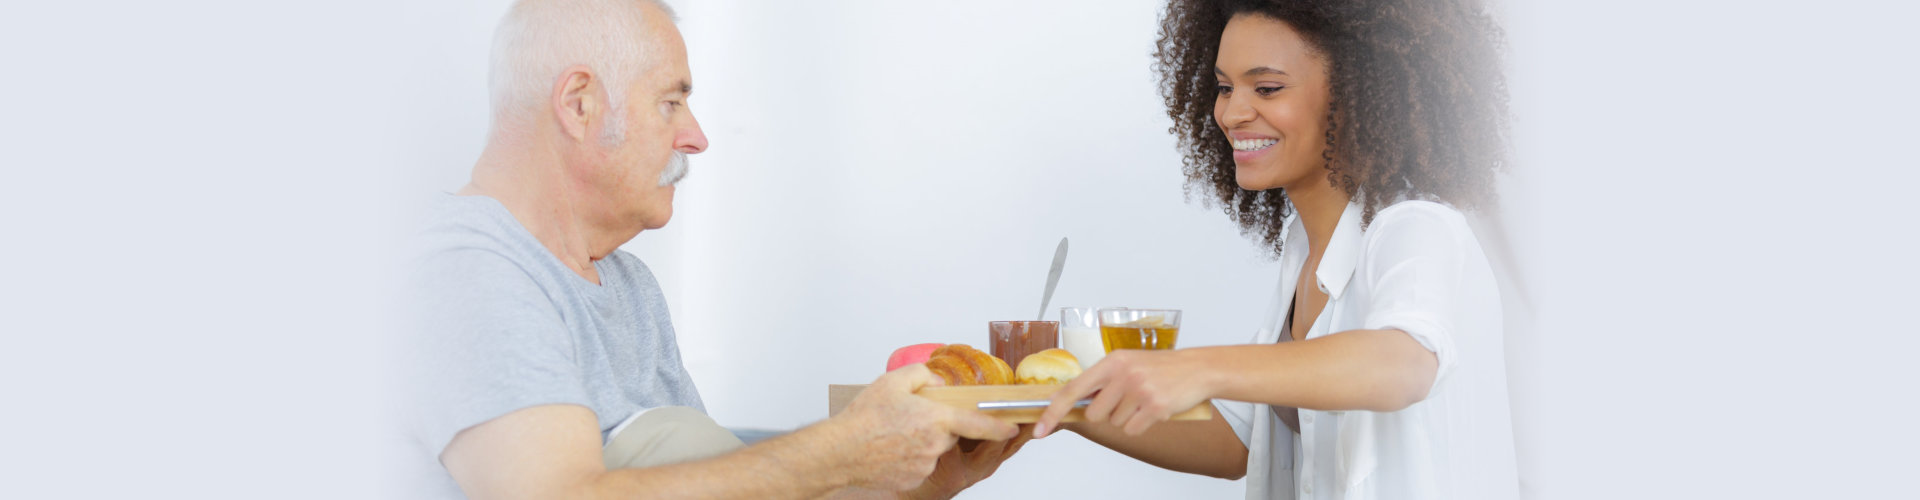 Care worker giving lunch to senior